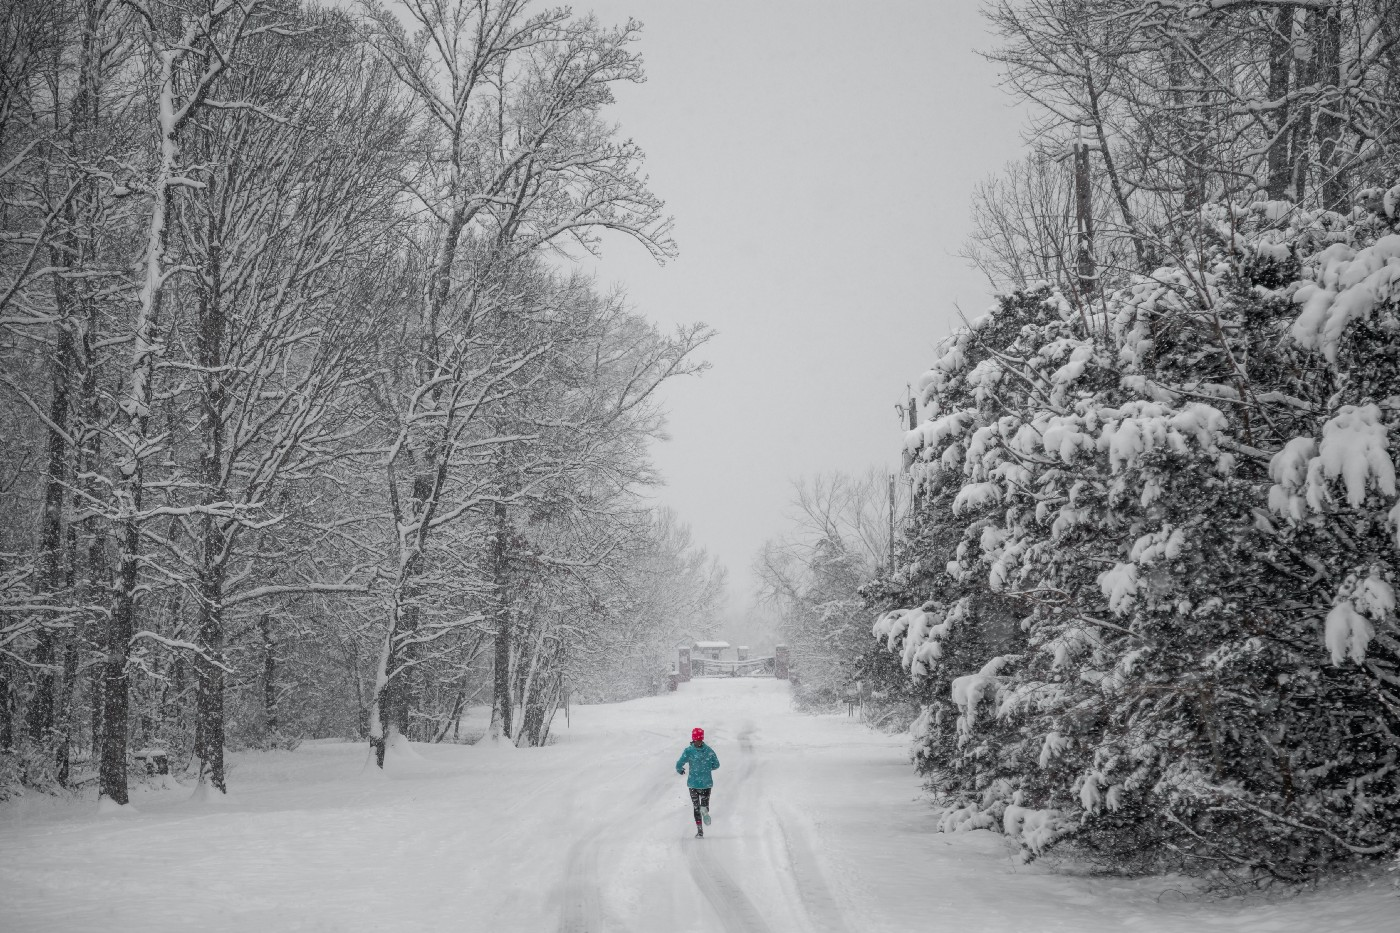 A person is running on a snow covered road in the woods.